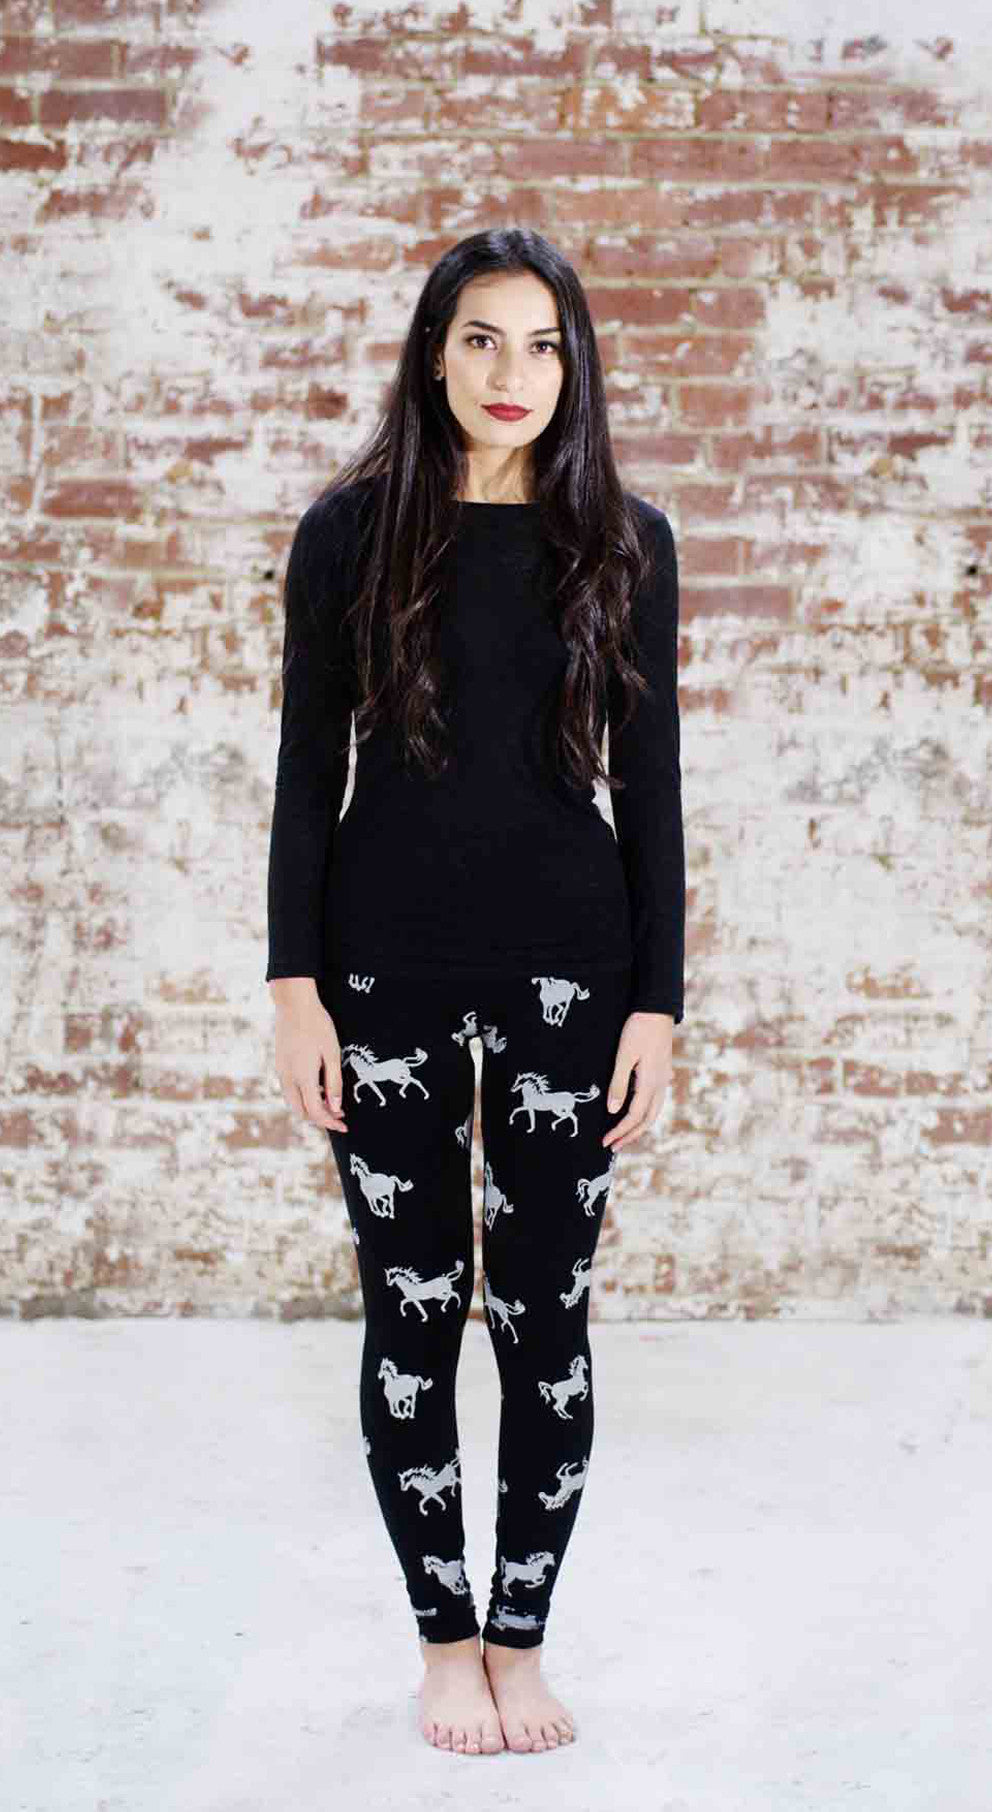 Violet Fish Fashion Horses hand-printed tights leggings coffee